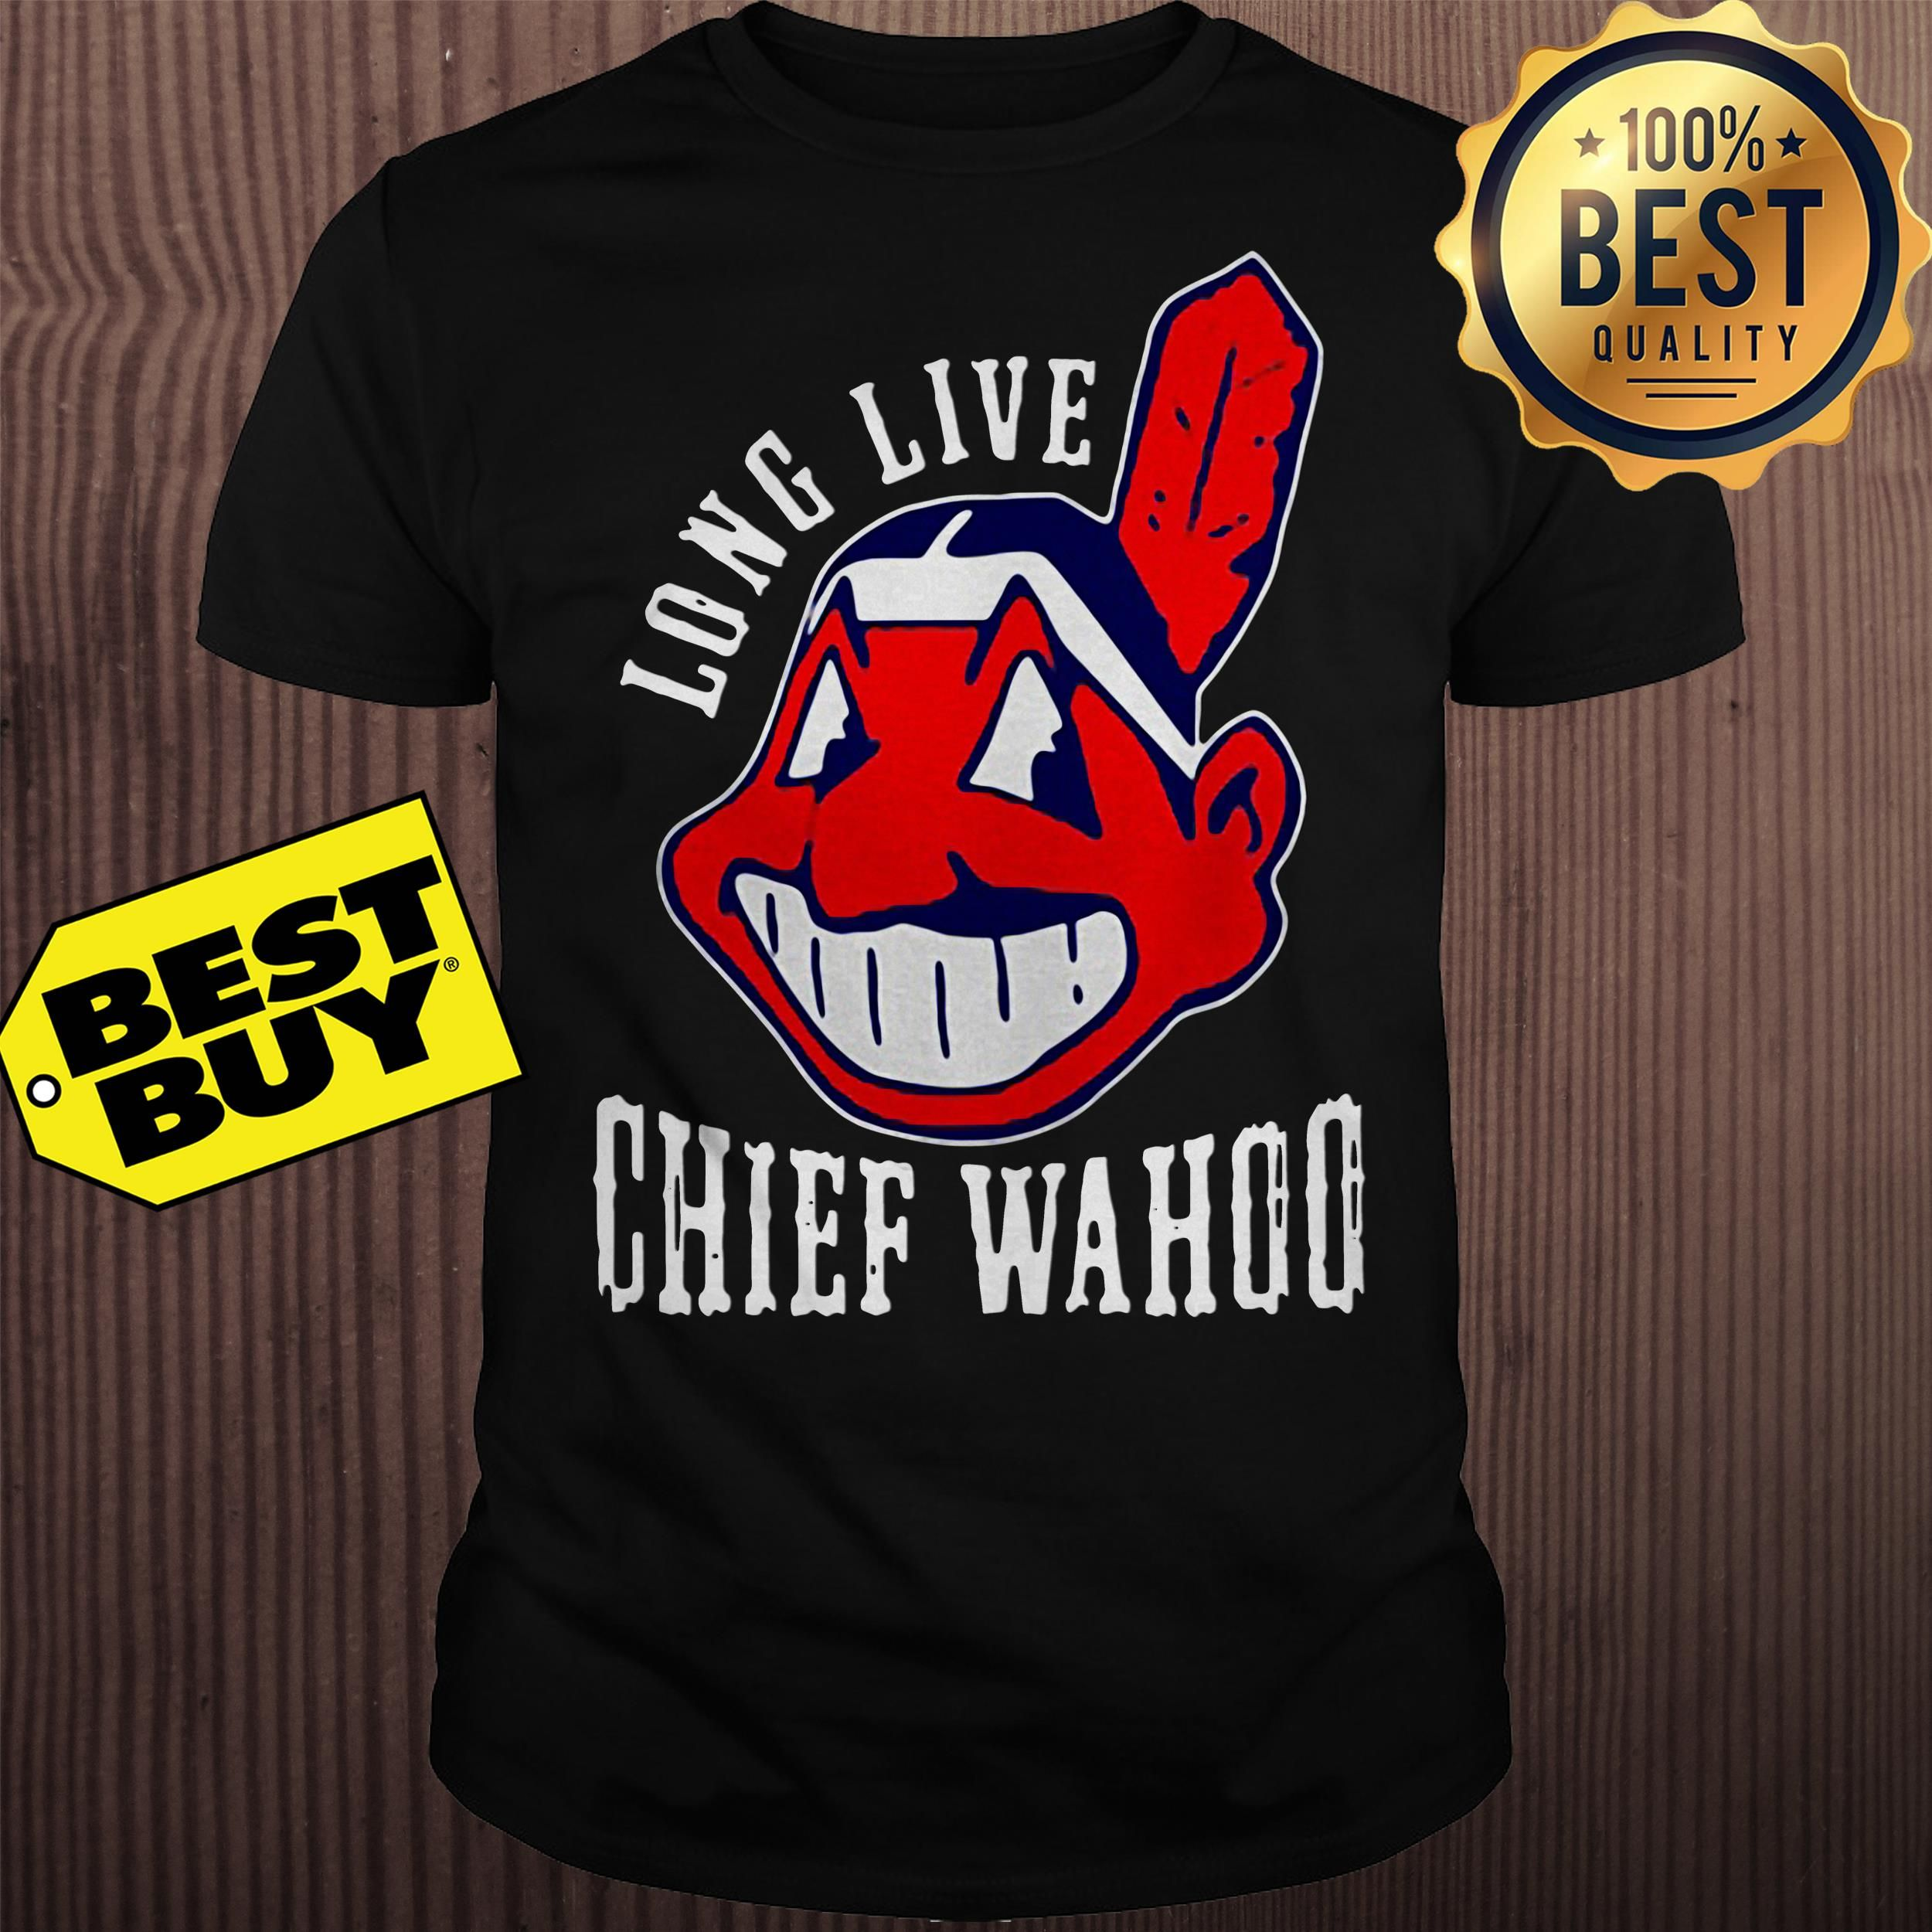 8cb1c325 Cleveland Indians long live chief wahoo shirt   Cleveland Indians ...